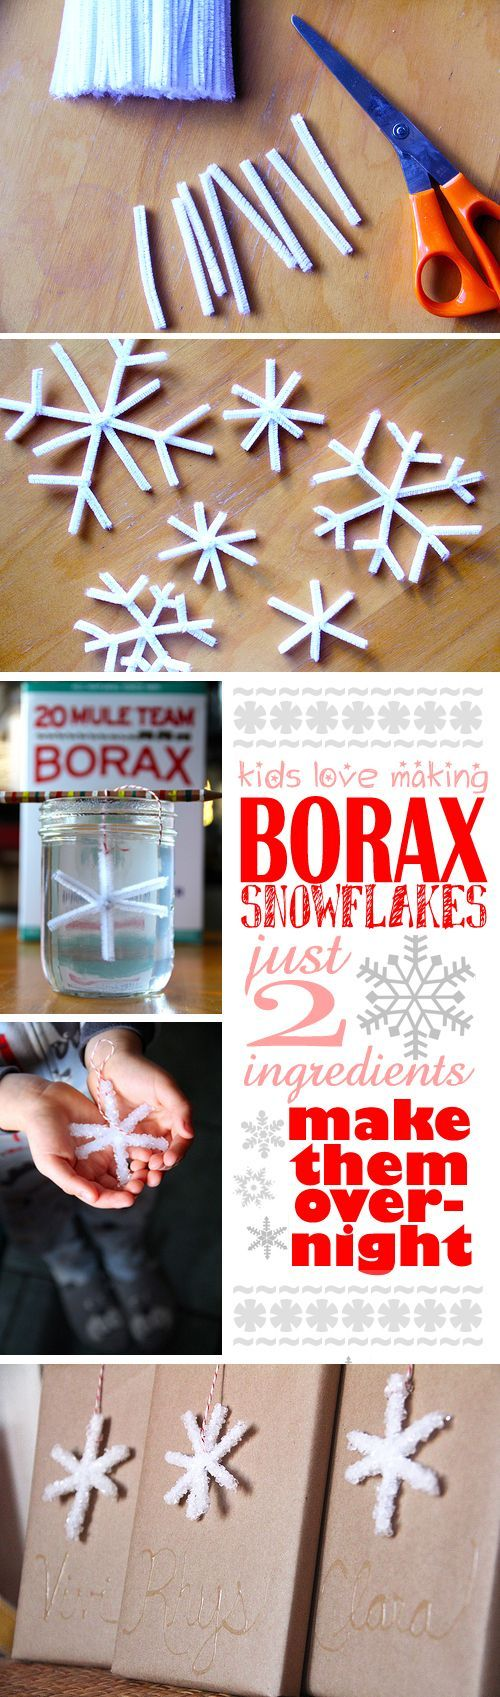 Crystal Snowflakes Recipe and Borax Uses for Kids on Frugal Coupon Living. 15 of the most creative Borax Recipes and science experiments to create in the home. Hands-on science experiments for kids. How to grow crystals.